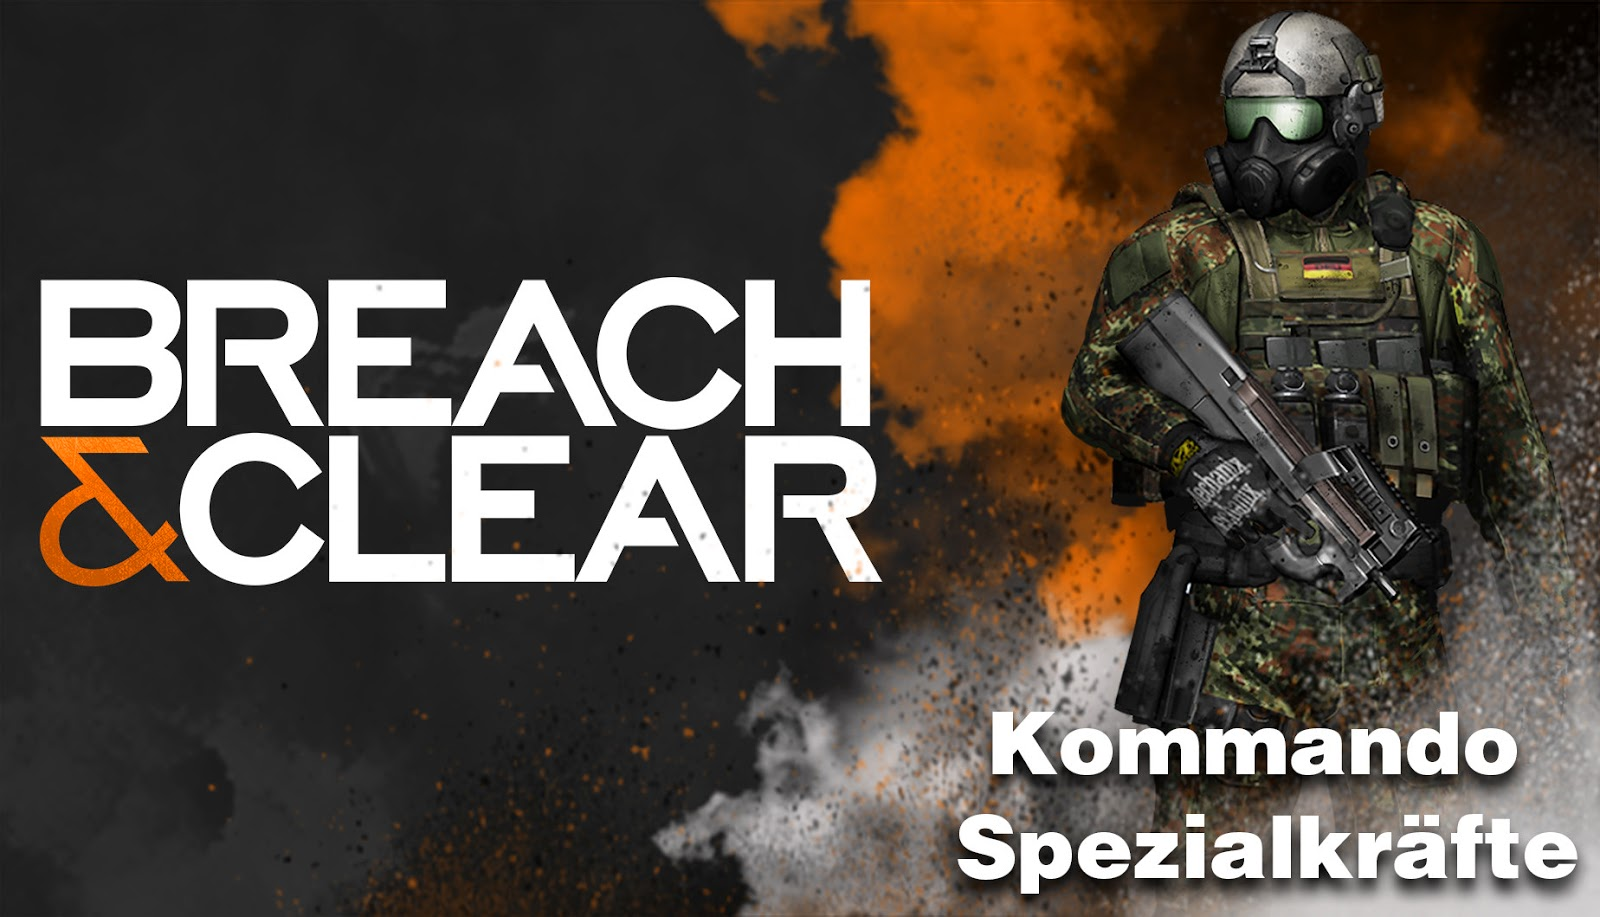 Breach & Clear v1.3.0p APK MOD